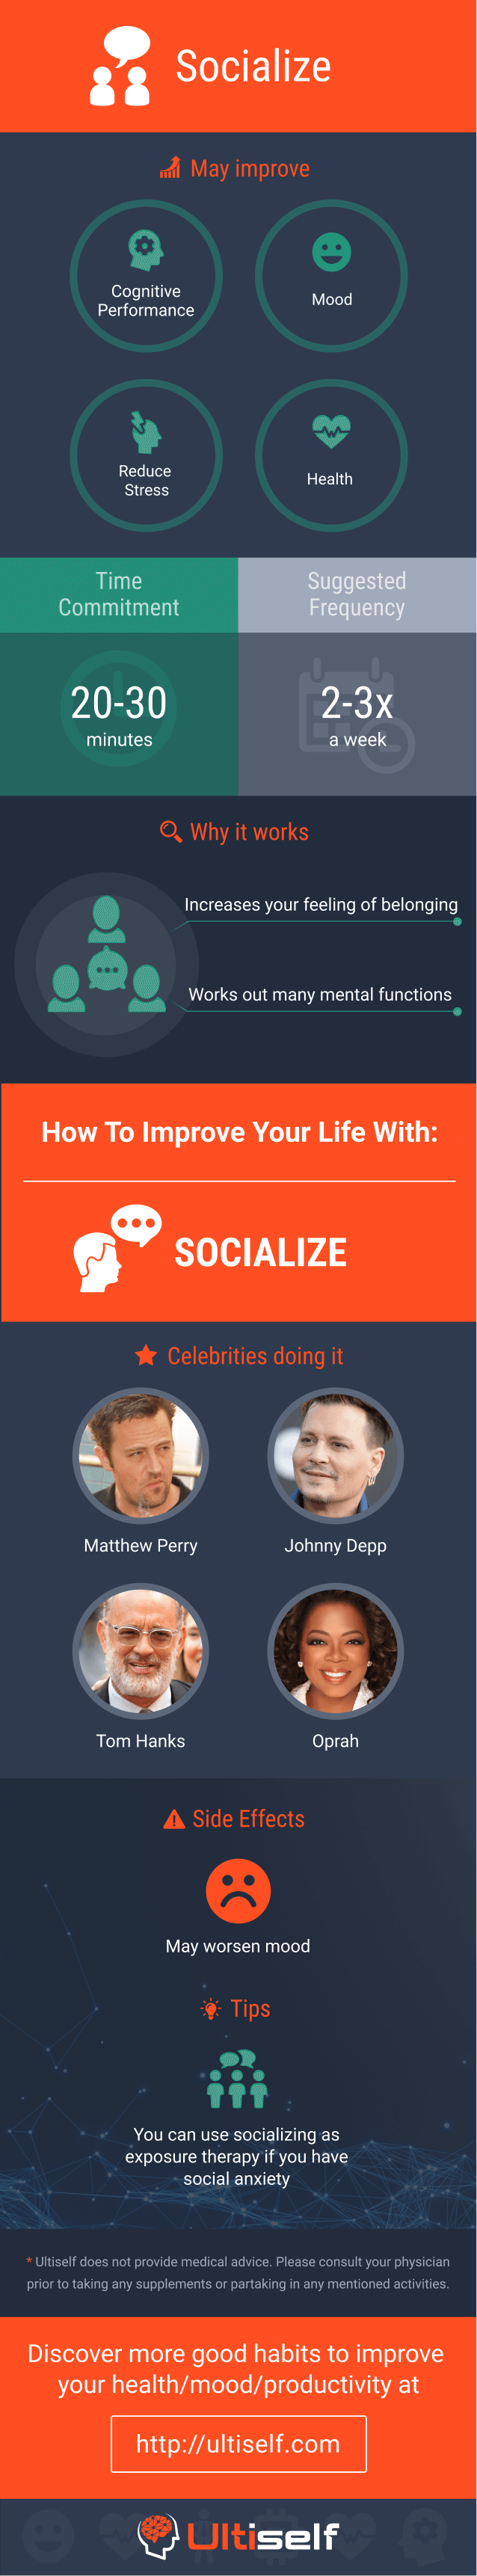 Socialize infographic